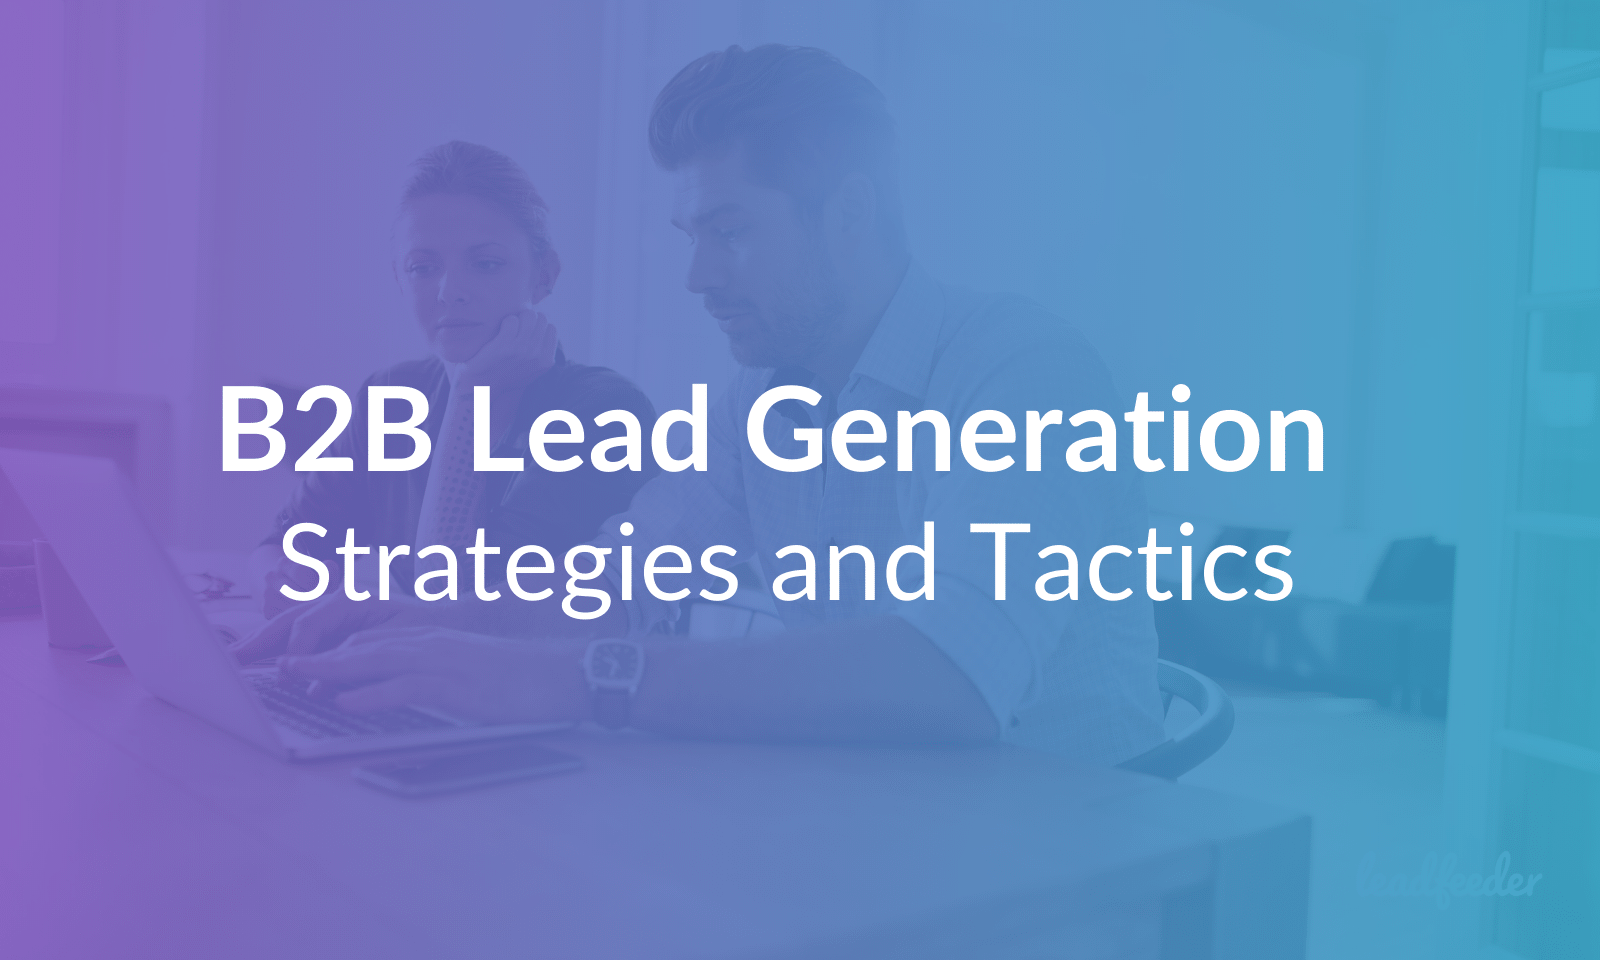 61 B2B Lead Generation Strategies and Tactics for 2020